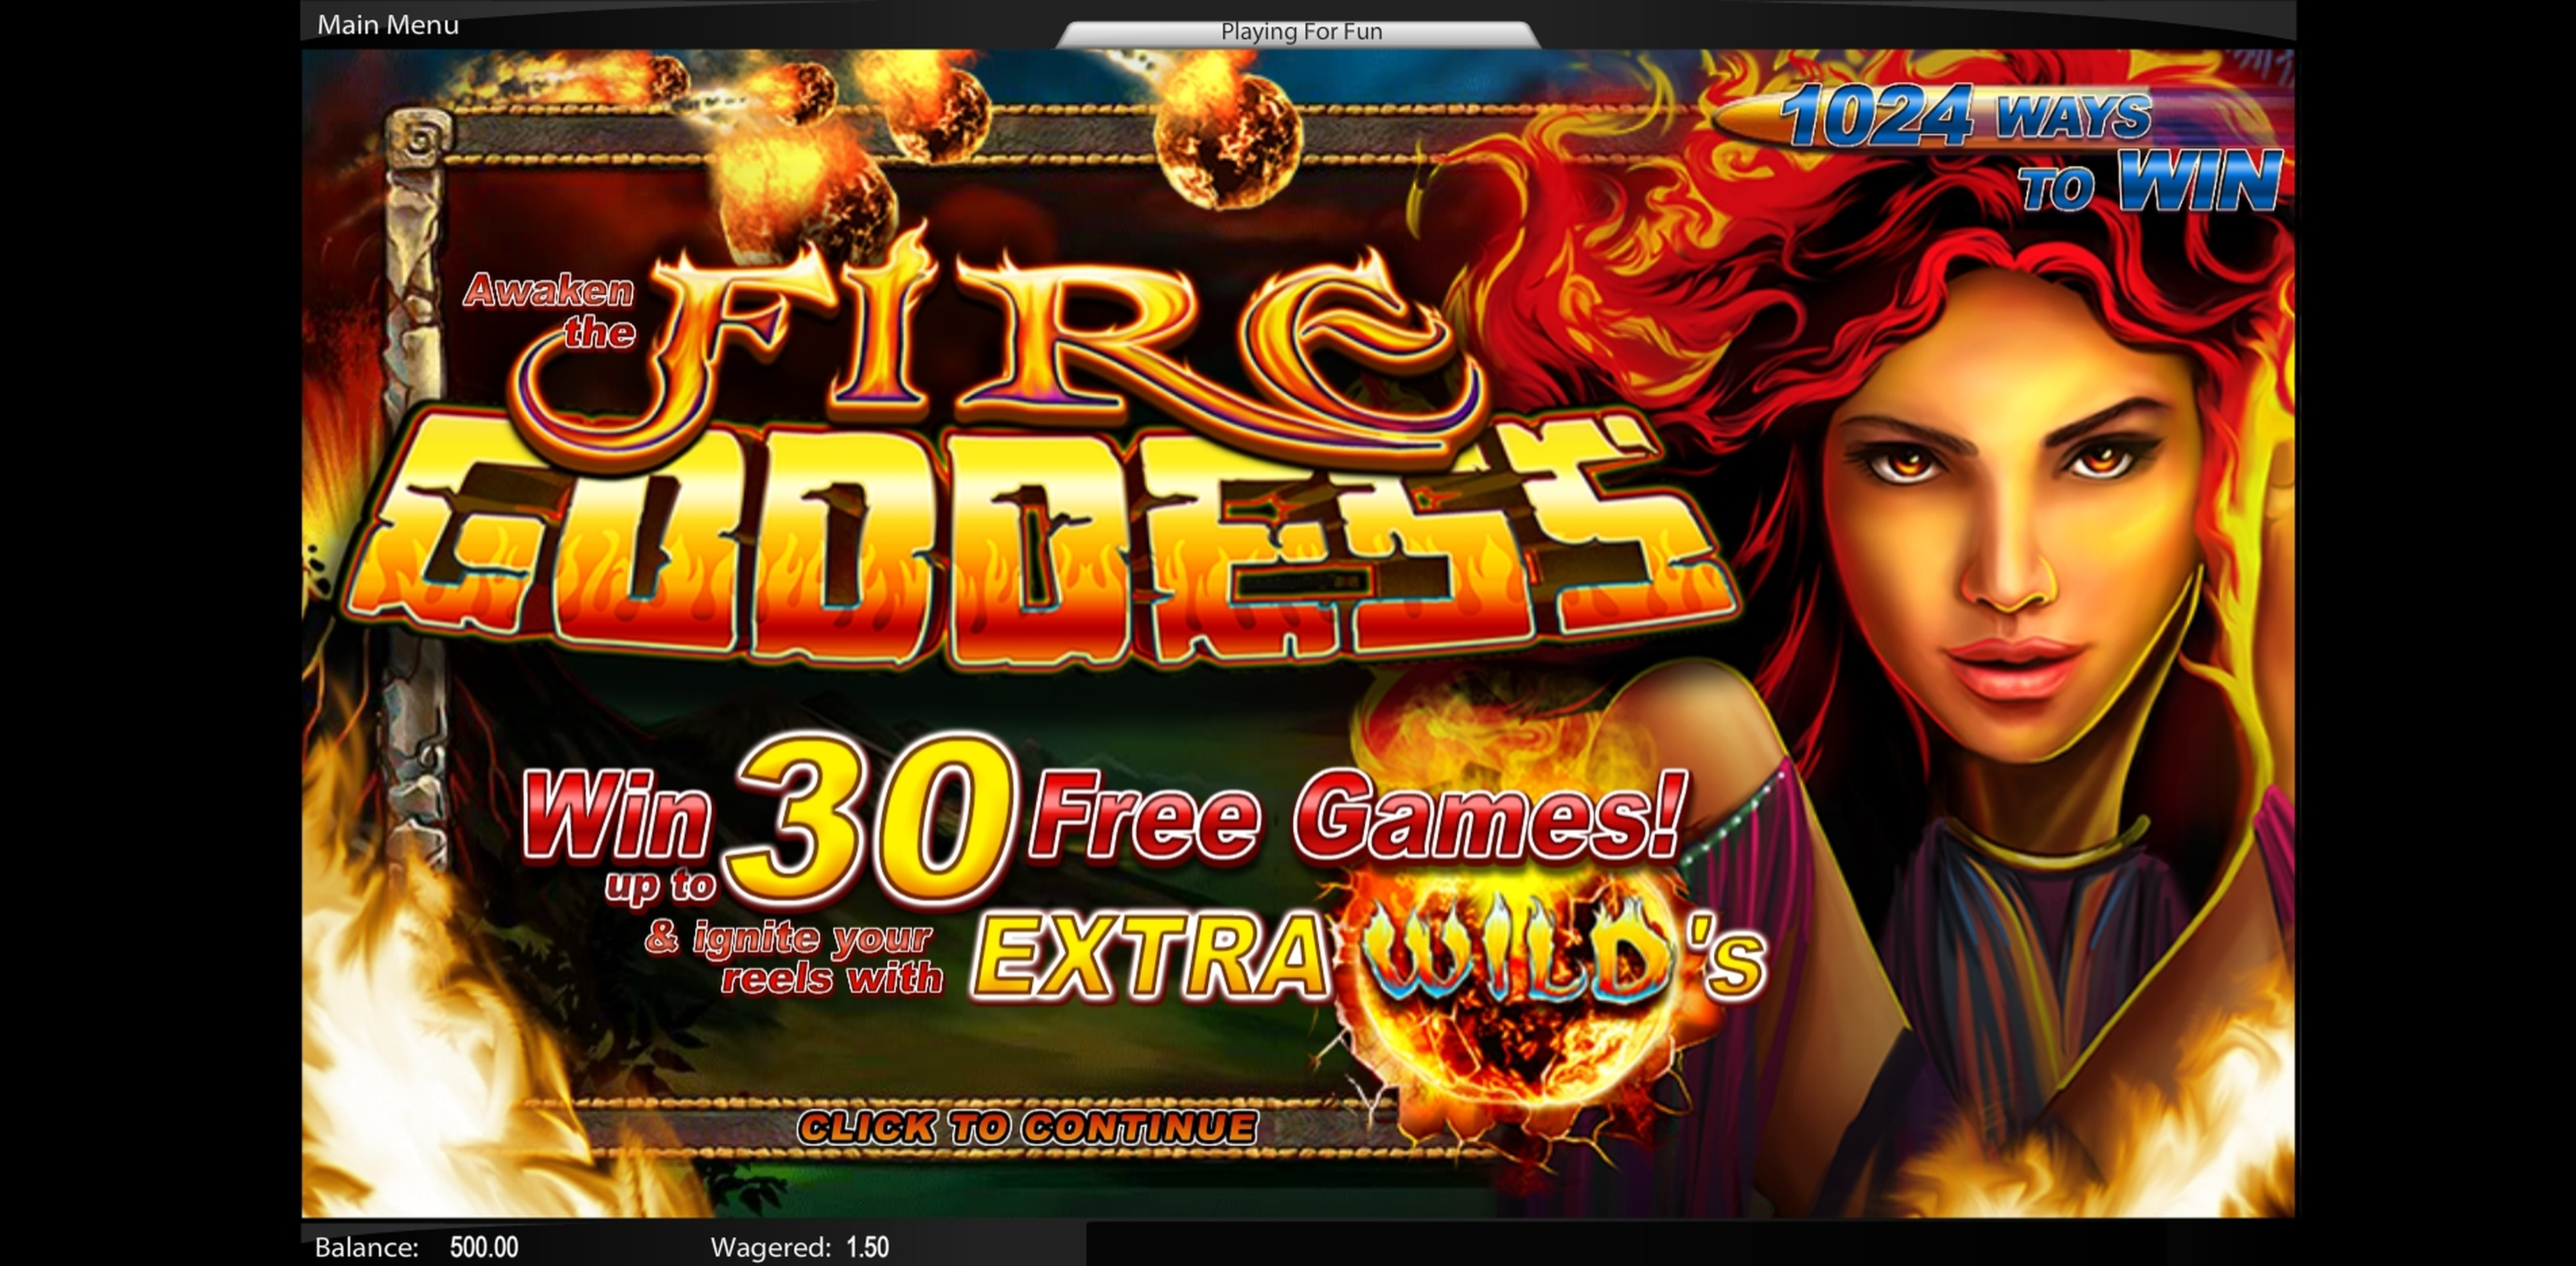 Play Fire Goddess (TopTrendGaming) Free Casino Slot Game by Top Trend Gaming